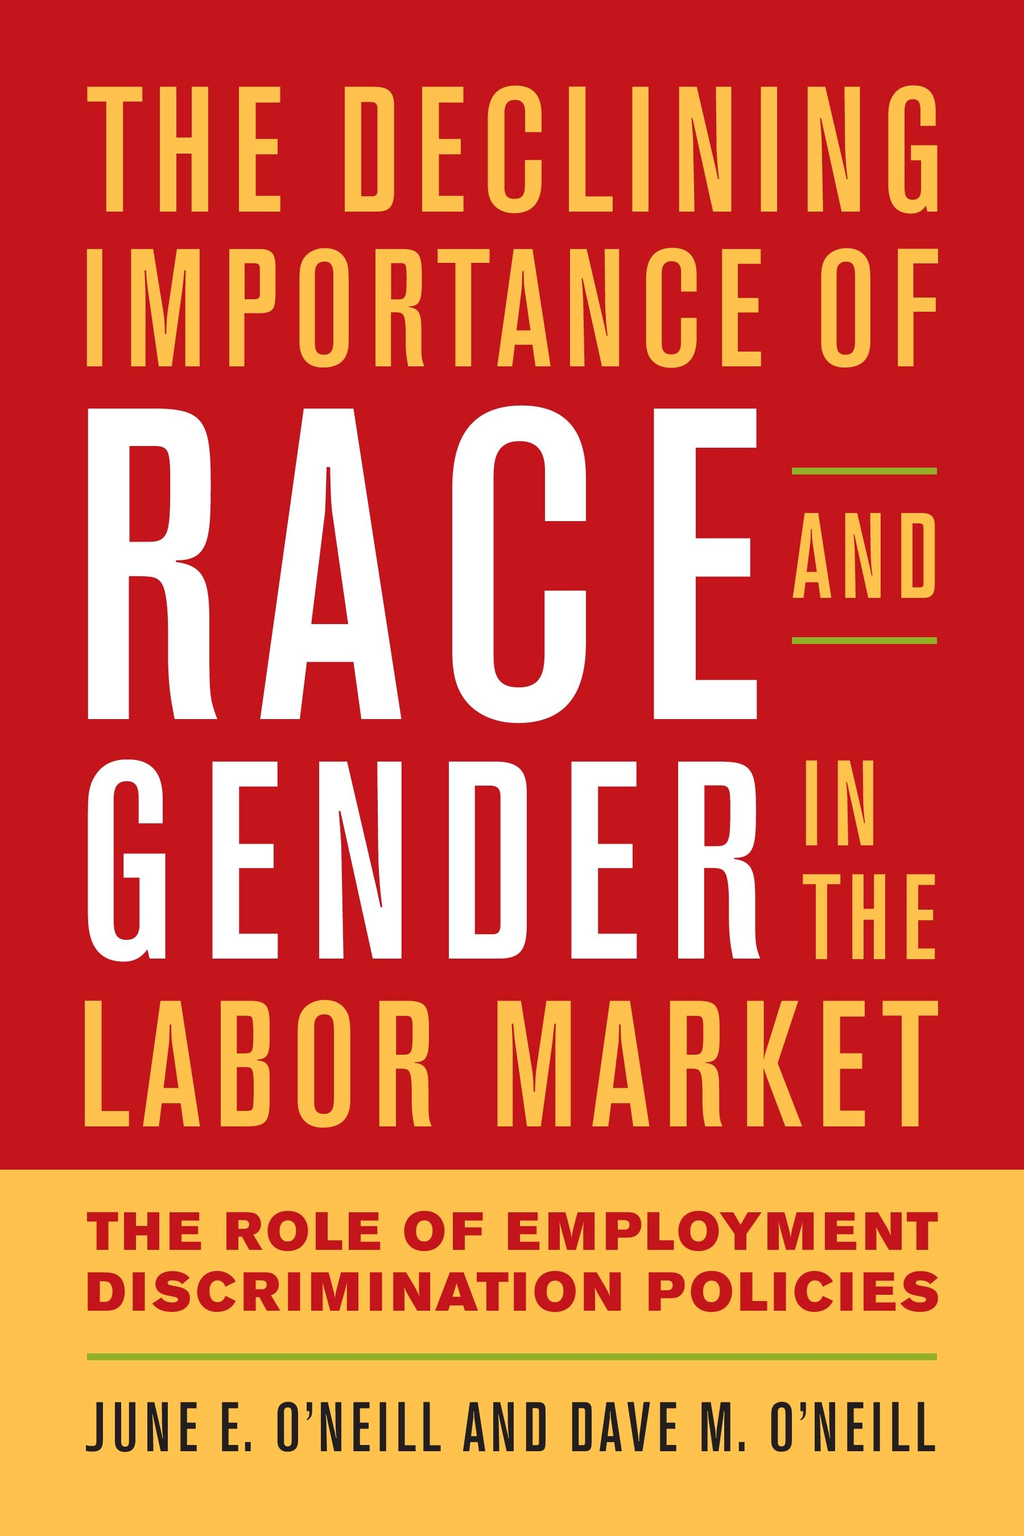 The Declining Importance of Race and Gender in the Labor Market